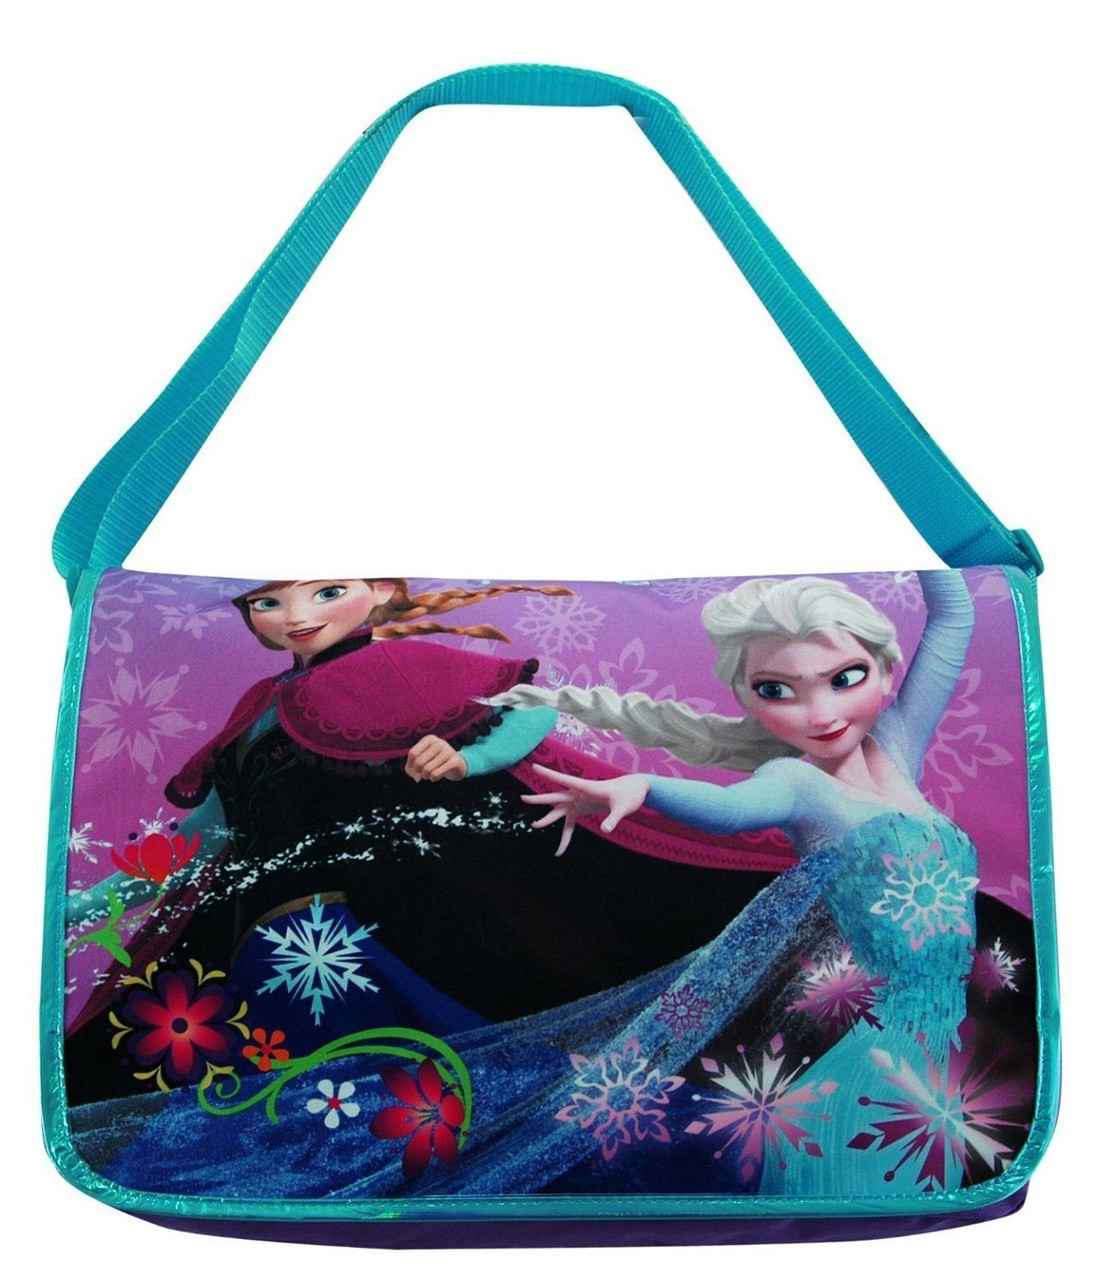 Frozen - Messenger Bag - Anna Elsa - Backpack